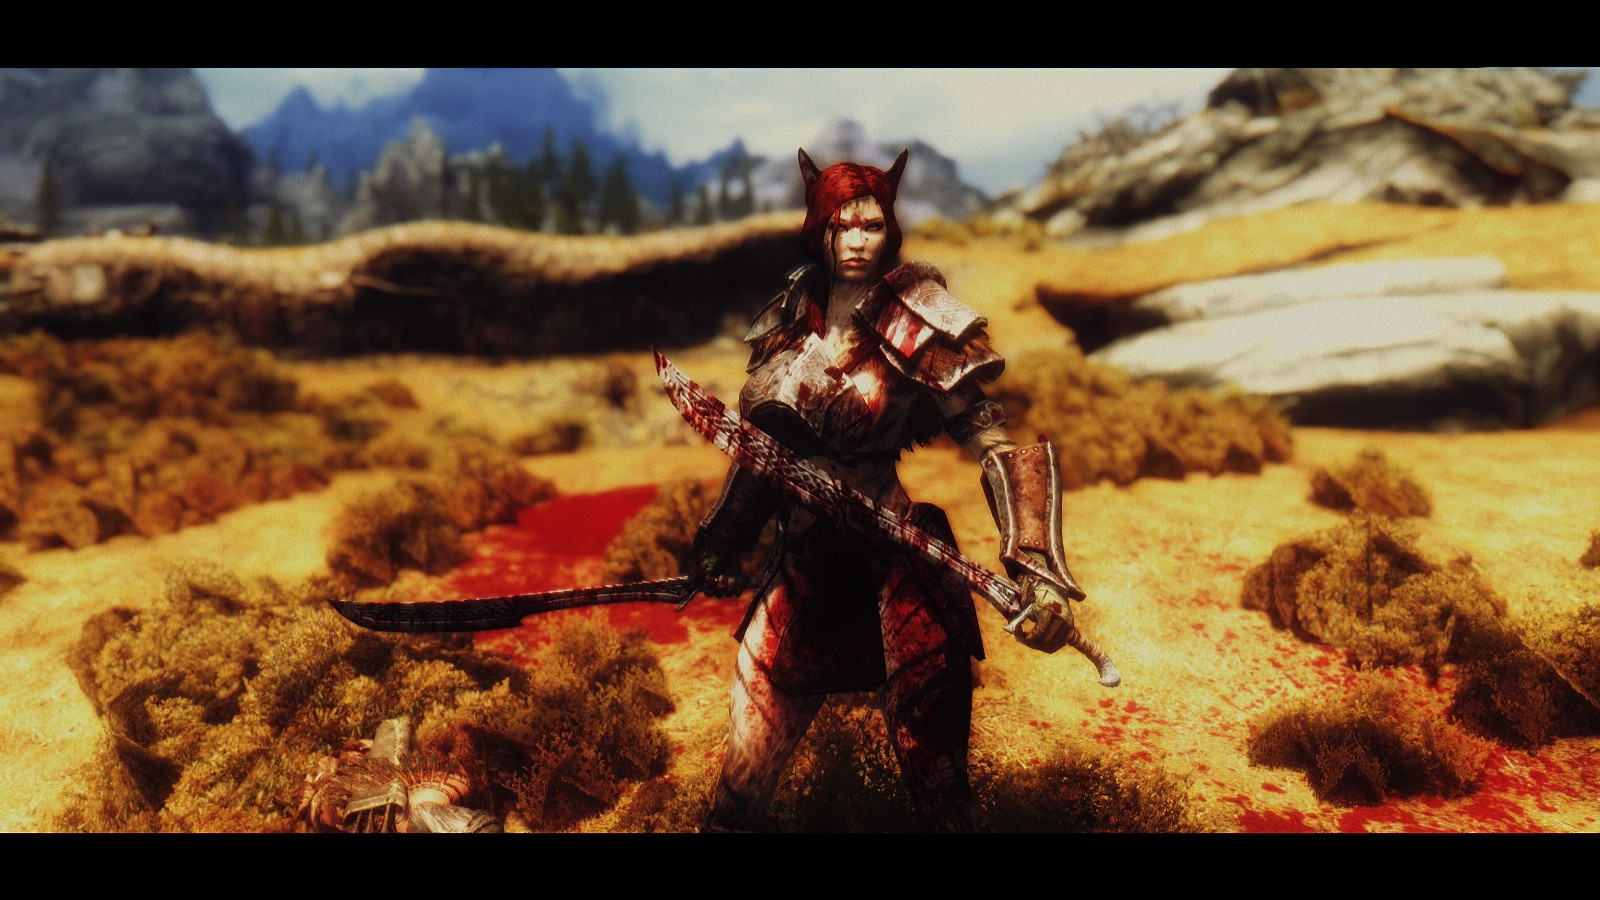 Blood of the forsworn